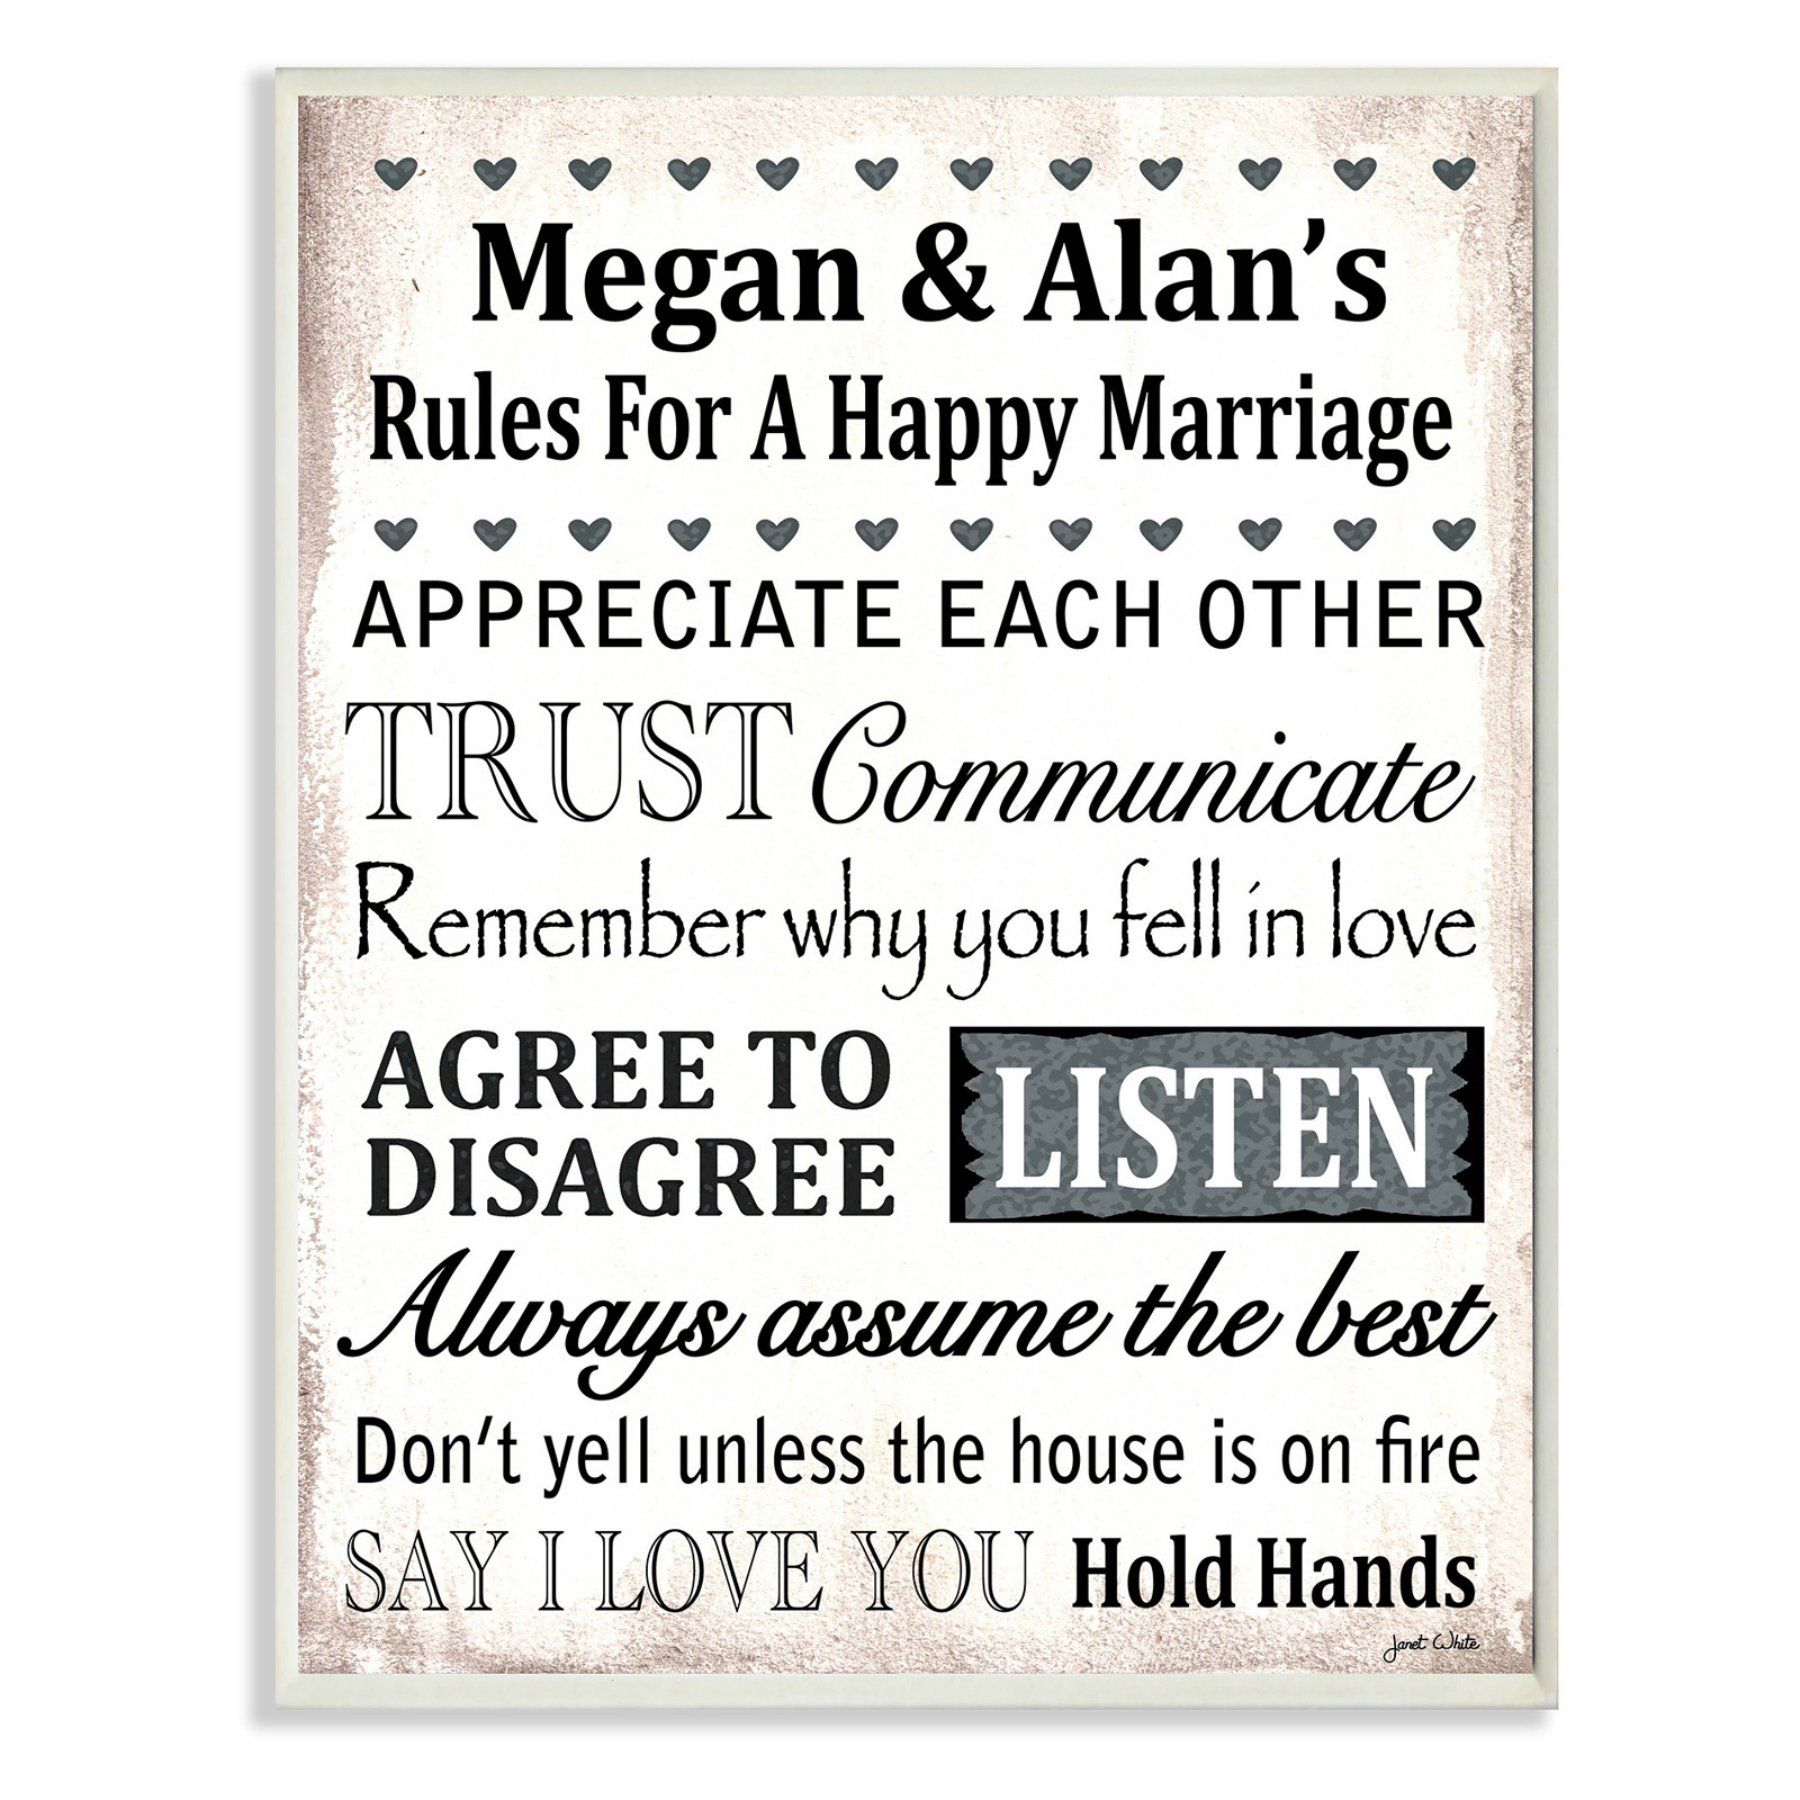 Stupell decor personalized rules for a happy marriage wall plaque